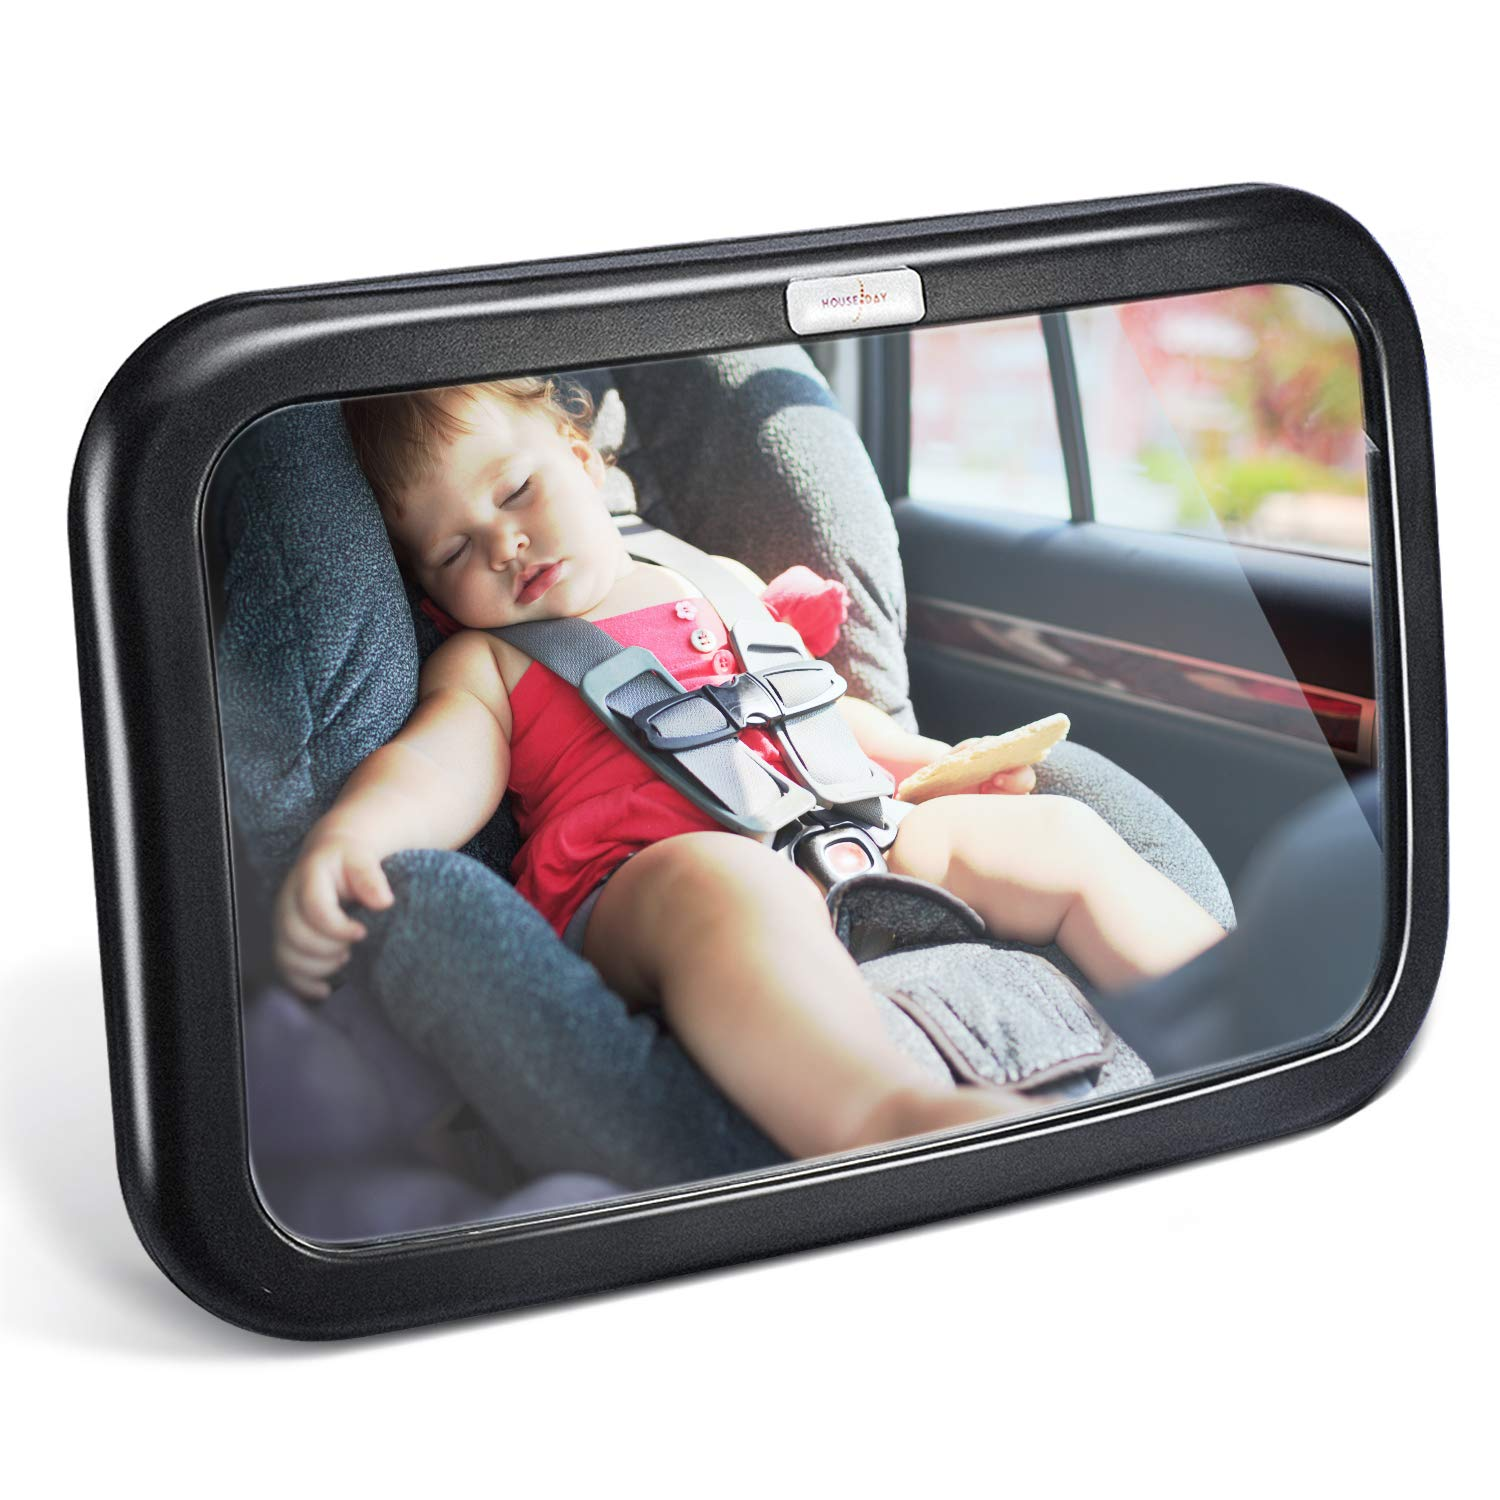 HOUSEDAY Baby Car Mirror | Most Stable | View Infant in Rear Facing Seat | 100% Lifetime Satisfaction Guarantee | Shatterproof & Crash Tested | Best Newborn Safety| Safety Car Seat Mirror for Rear Fac